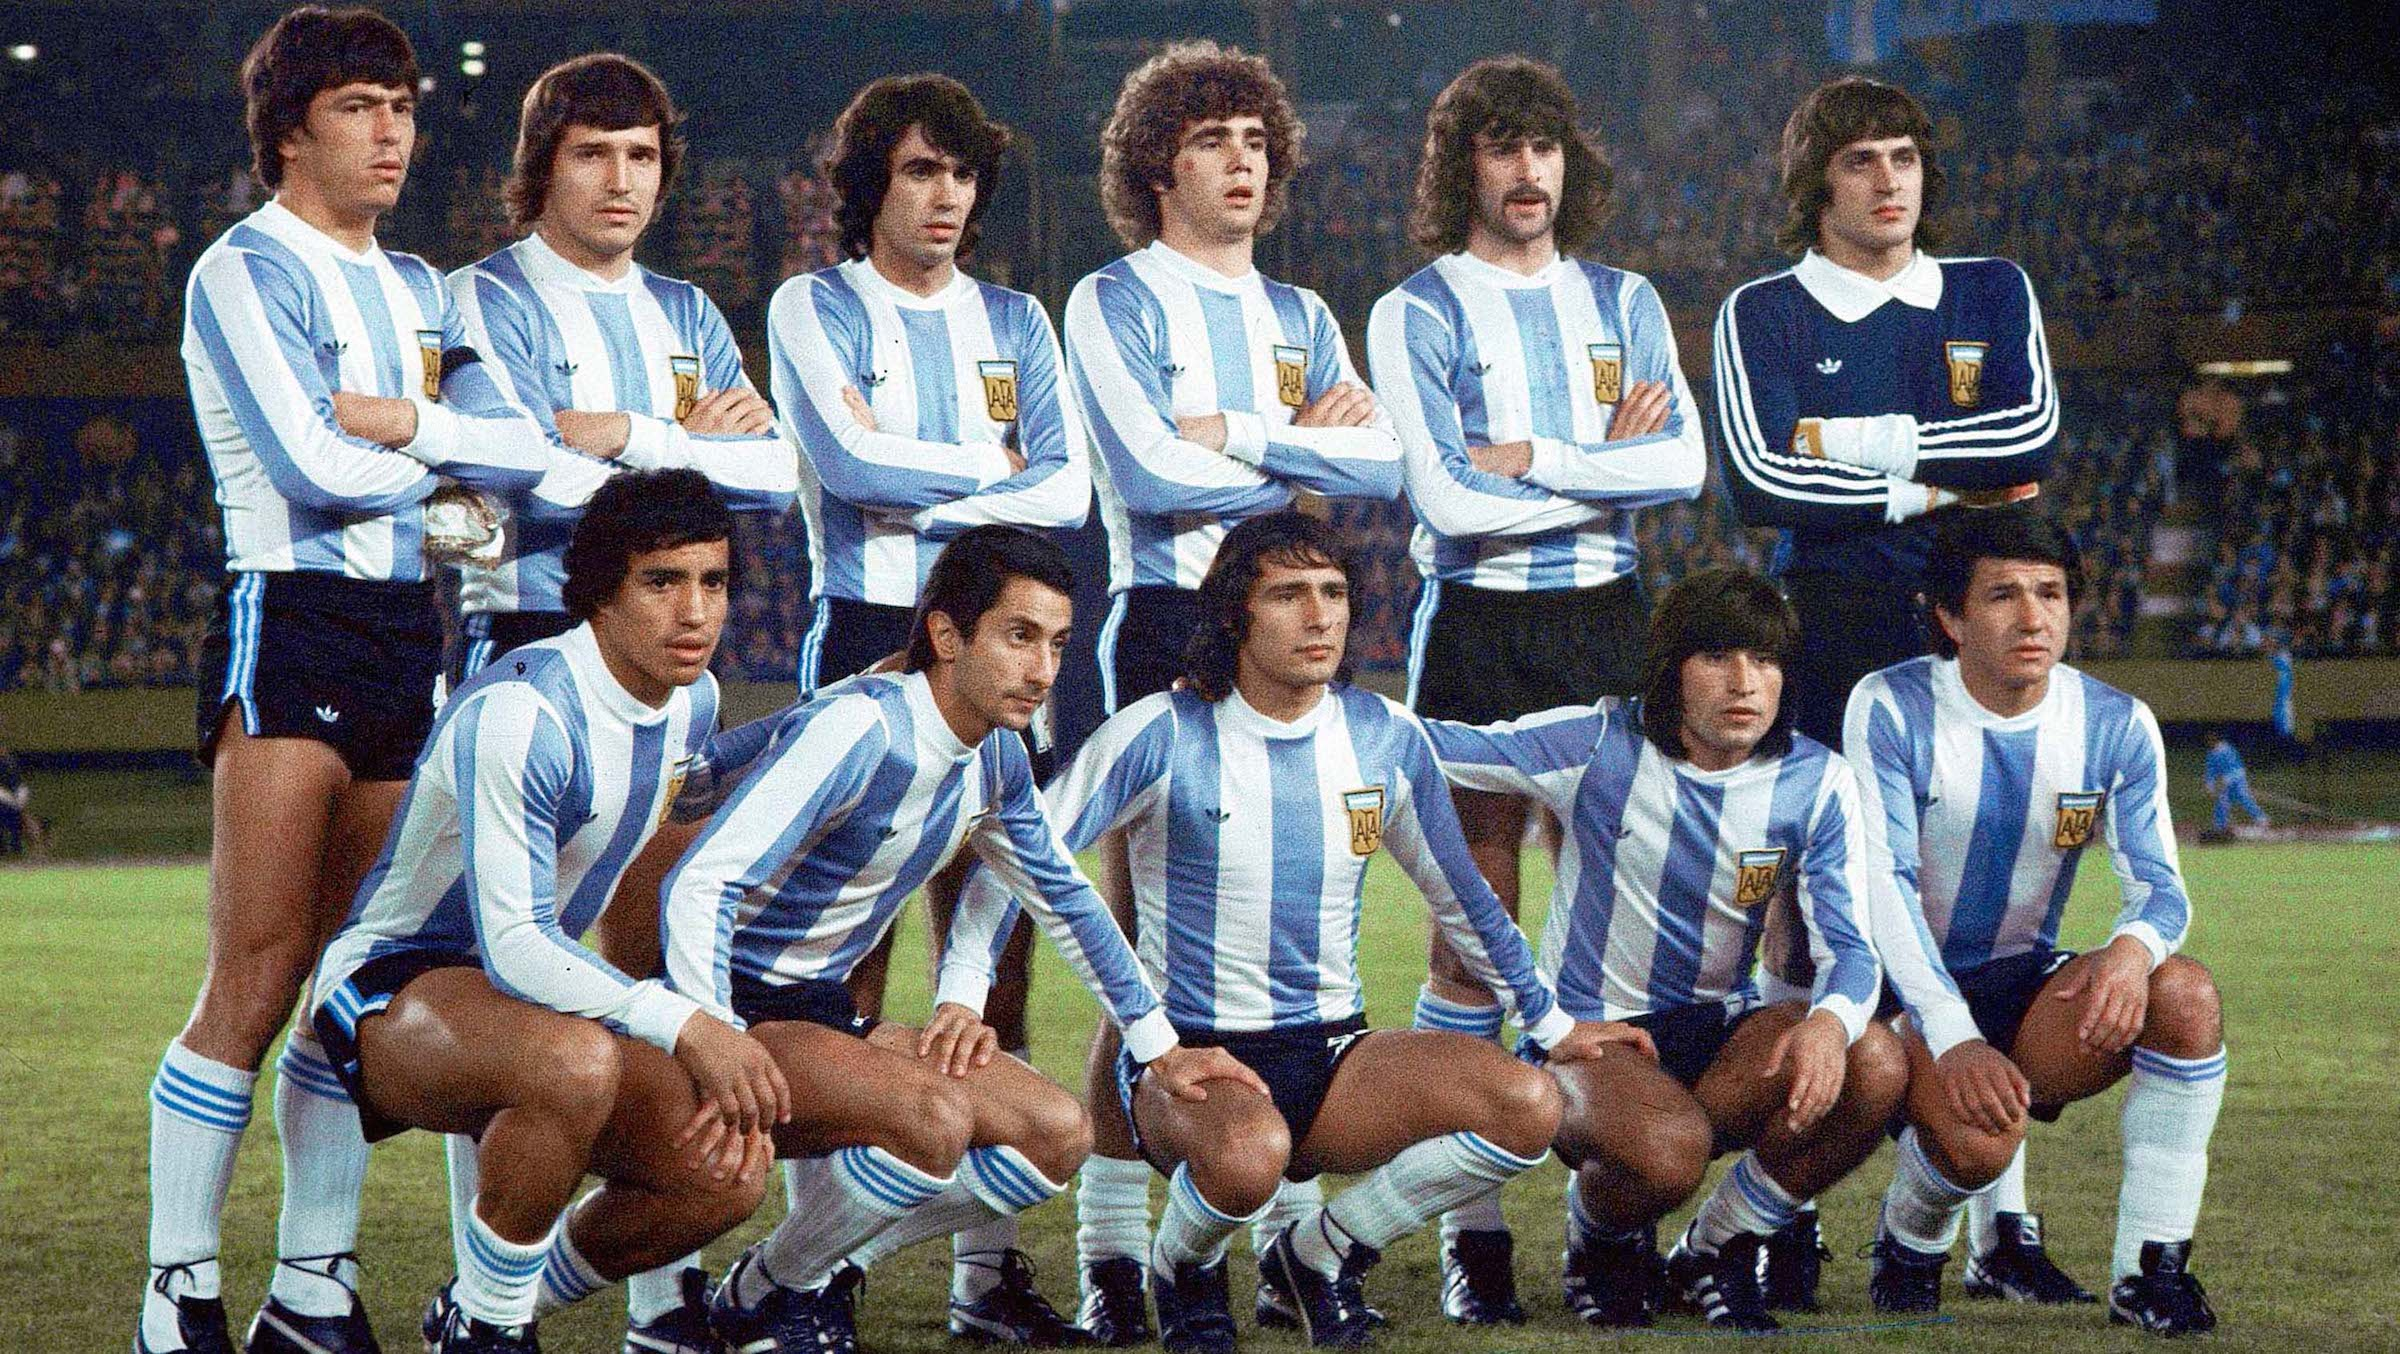 """FILE - In this June 25, 1978 file photo the Argentina soccer team players pose prior to the start of the World Cup final in Buenos Aires, Argentina. Argentina defeated the Netherlands 3-1. A FIFA-hosted conference on World Cup history has been told that football's biggest prize was twice won with the help of dictators fixing matches for the host team. According to """"The Relevance and Impact of FIFA World Cups"""" symposium, Argentina's triumph in 1978 and Italy's 1934 victory were influenced by military leaders seeking propaganda coups. (AP Photo/Carlo Fumagalli, File)"""